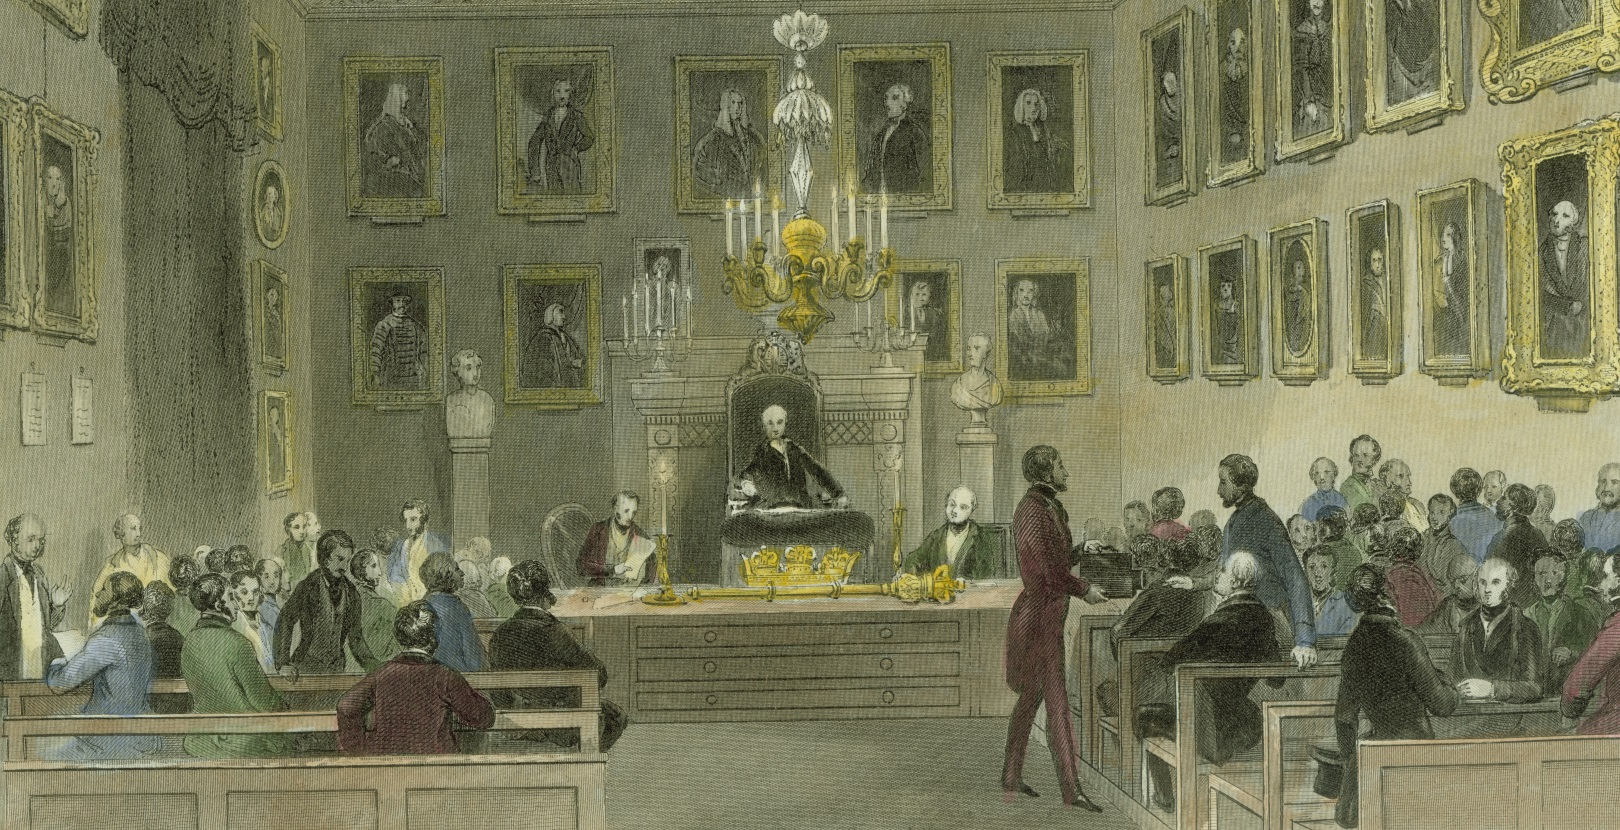 The Royal Society by candlelight